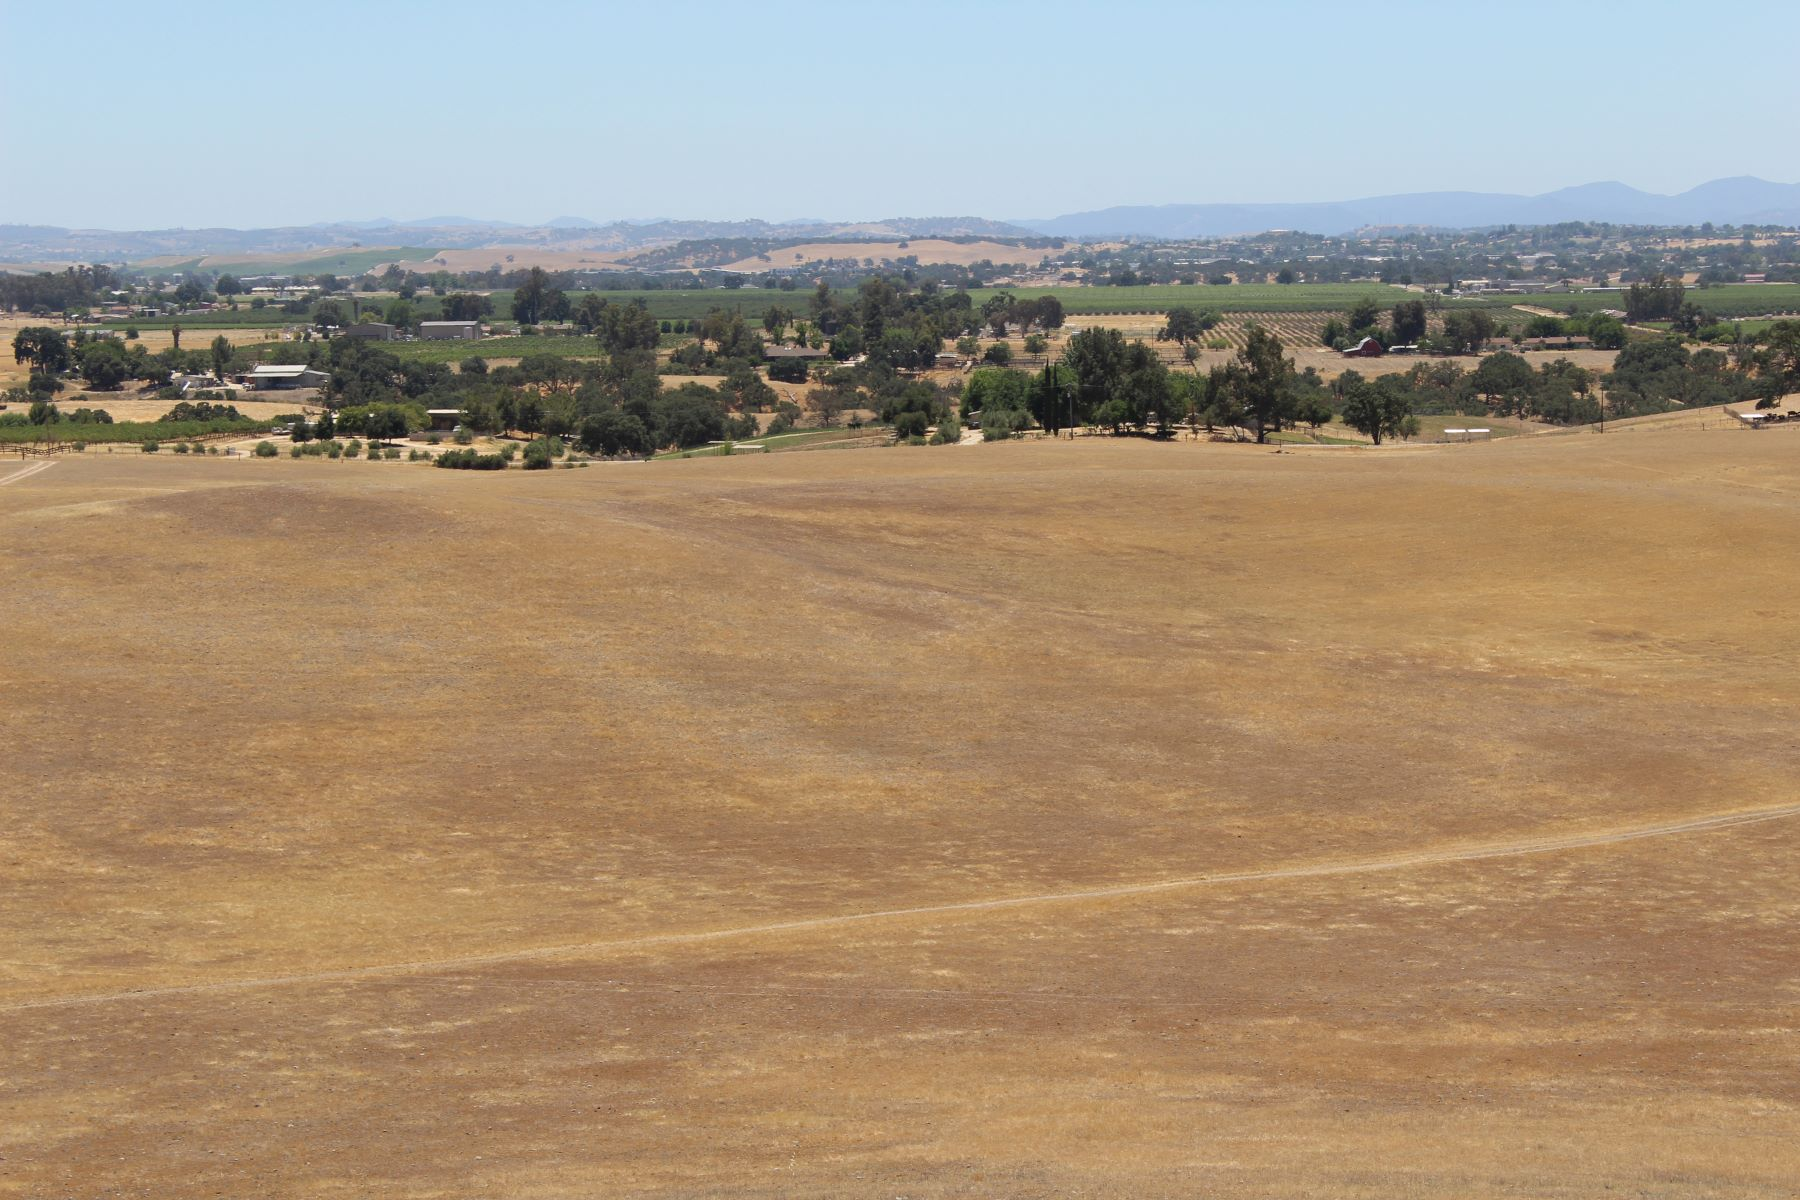 Land for Sale at Panoramic Views of Vineyards on this 82.97± Acres Wellsona Road, Parcel 2 Paso Robles, California 93446 United States